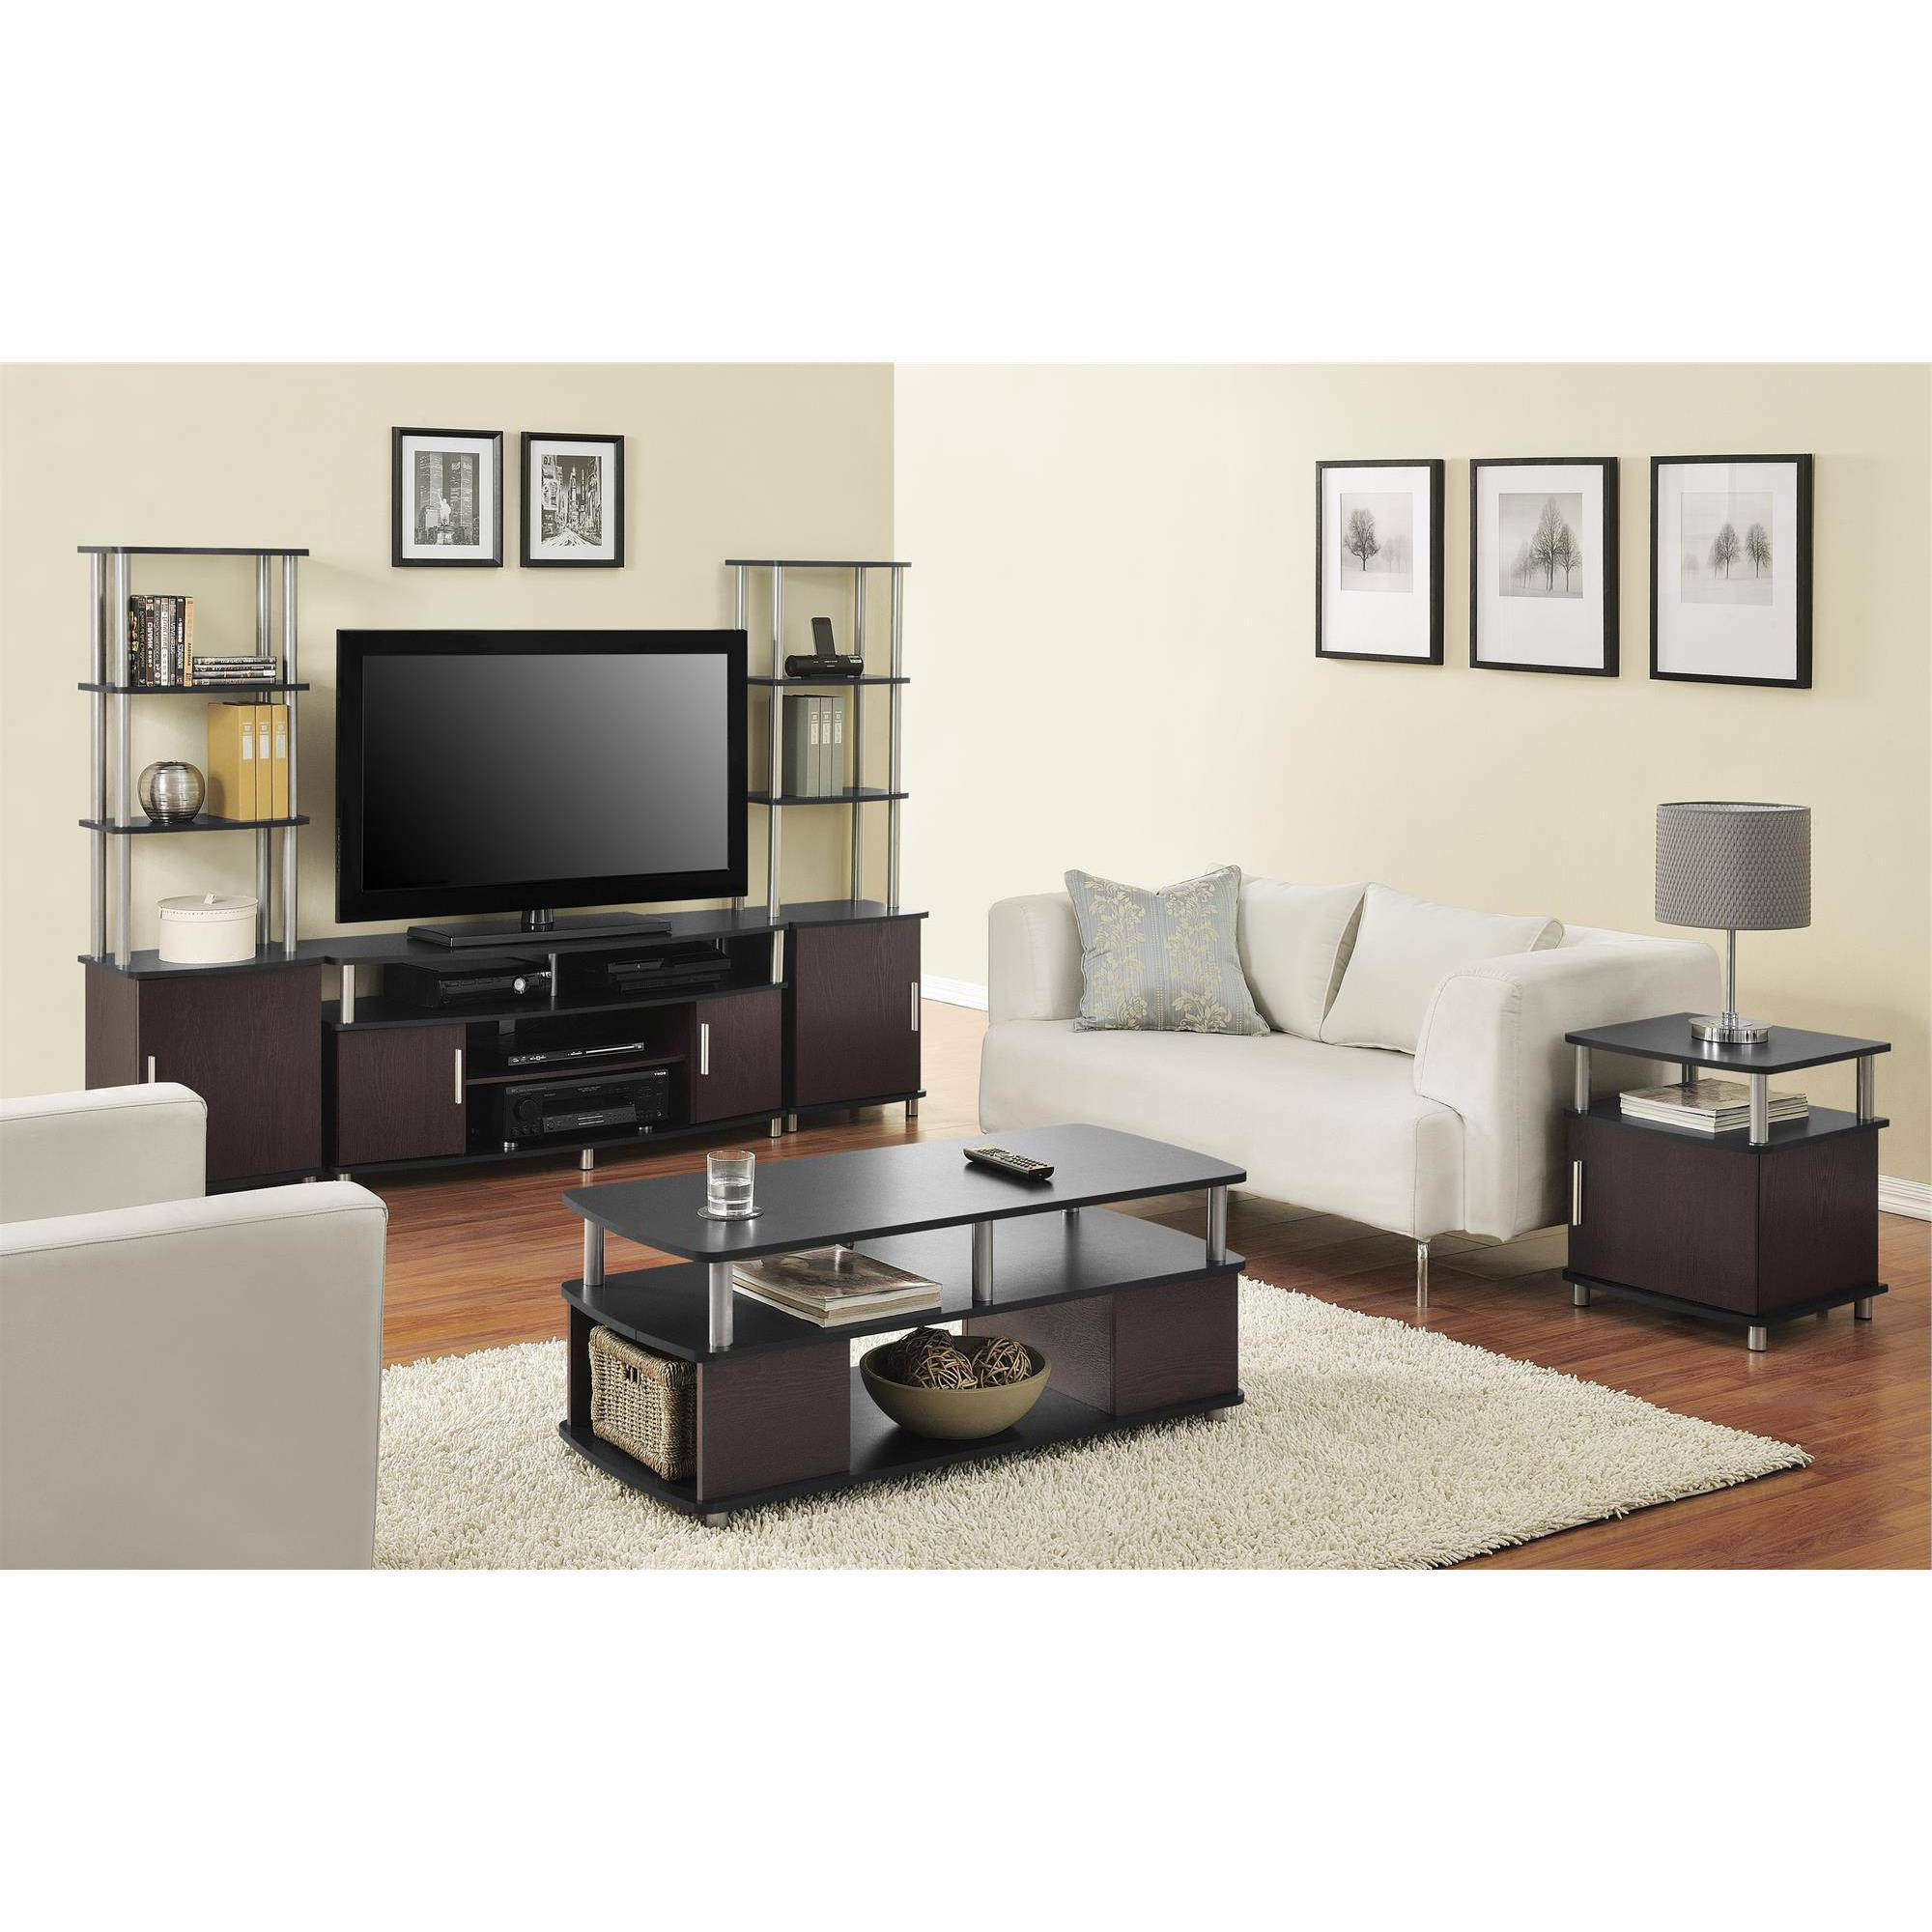 Preferred Matching Tv Stand And Computer Desk Can I Use A Coffee Table As Inside Rustic Coffee Table And Tv Stand (View 9 of 20)